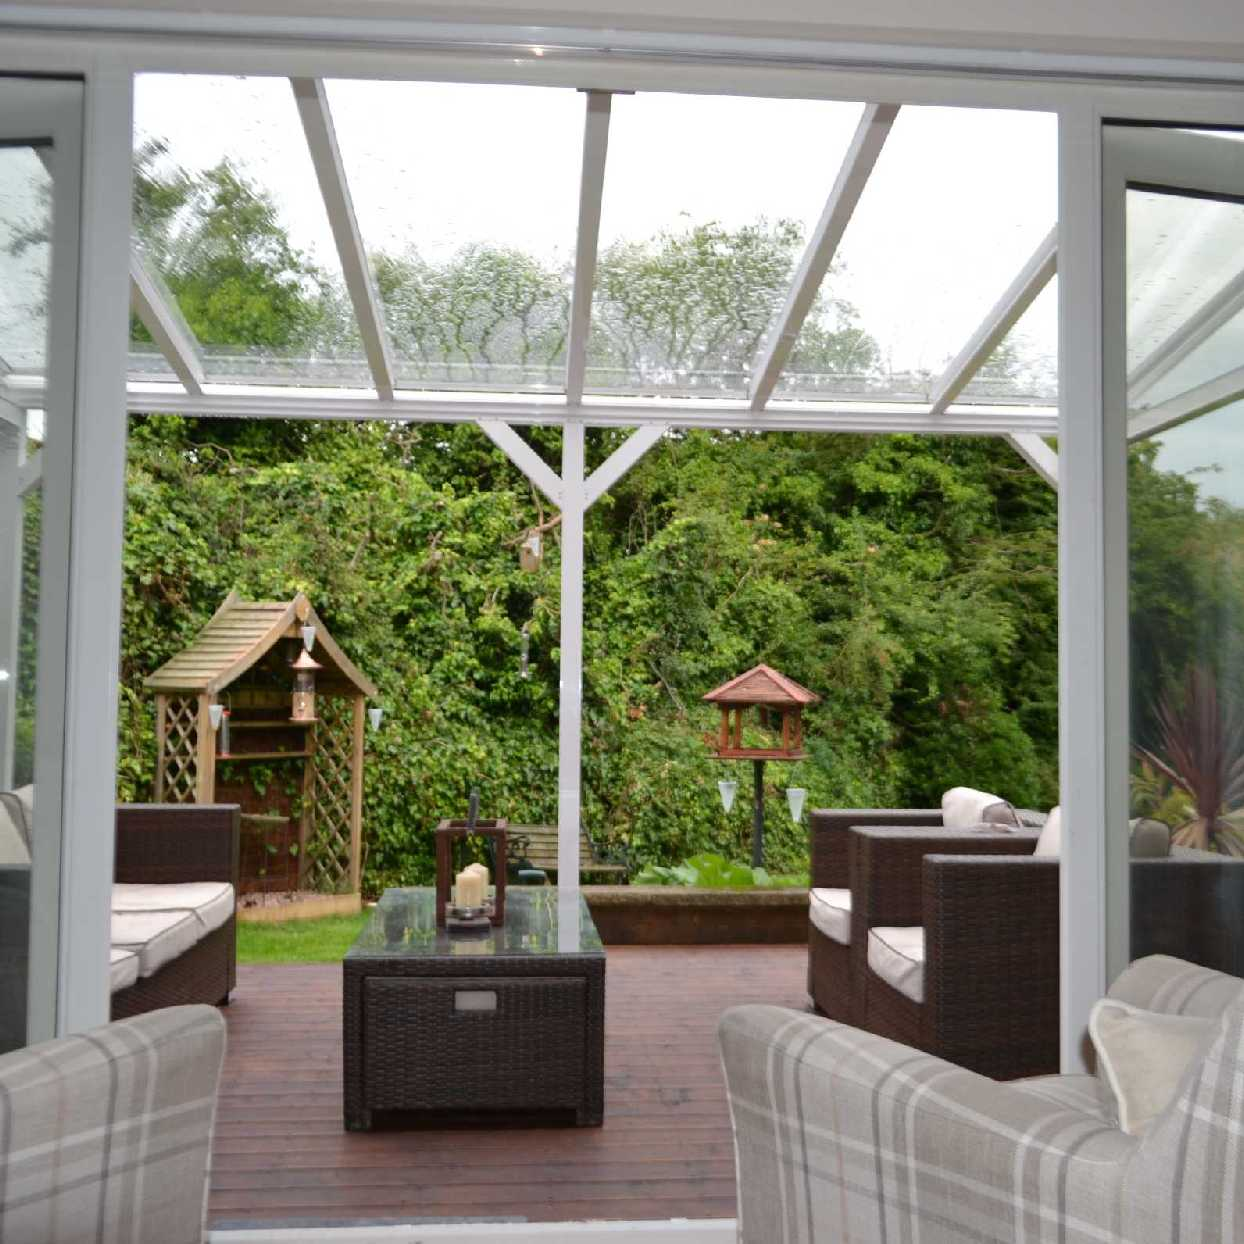 Great selection of Omega Smart Lean-To Canopy UNGLAZED for 6mm Glazing - 5.6m (W) x 2.5m (P), (3) Supporting Posts